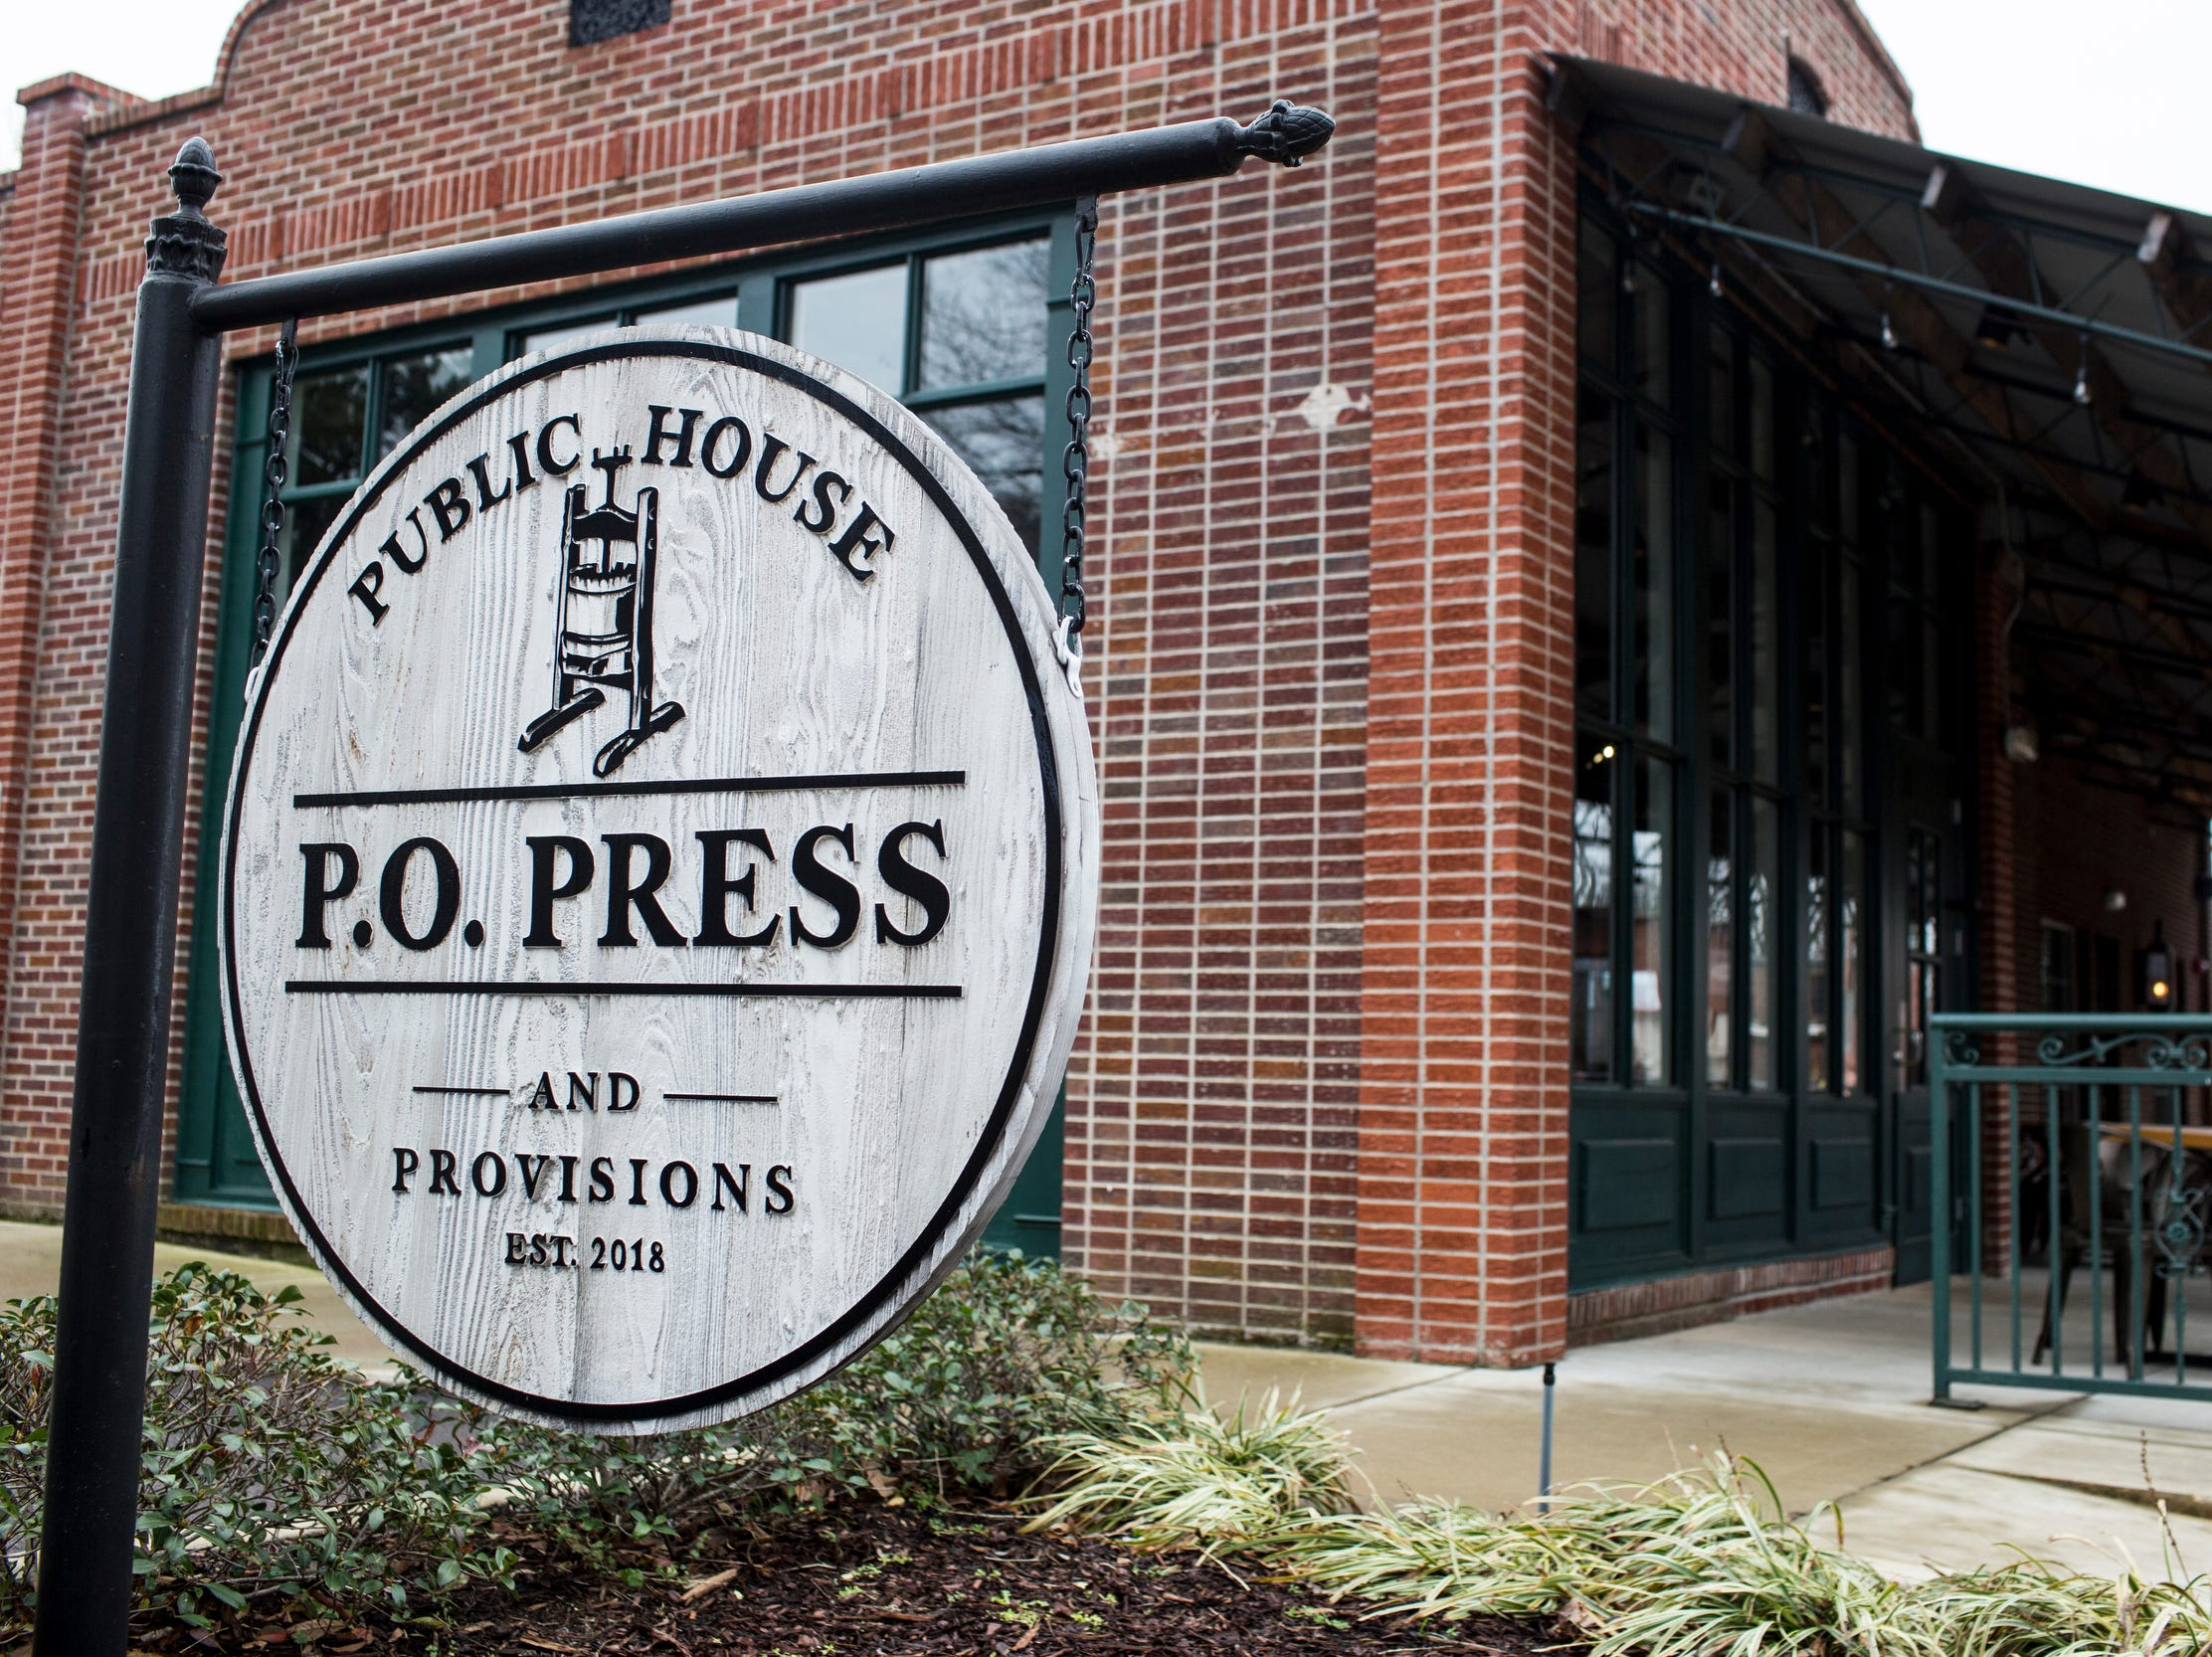 February 10, 2019 - Brunch is served at PO Press Public House & Provisions in Collierville on Sundays. PO Press Public House & Provisions is located at 148 N Main St. in Collierville.